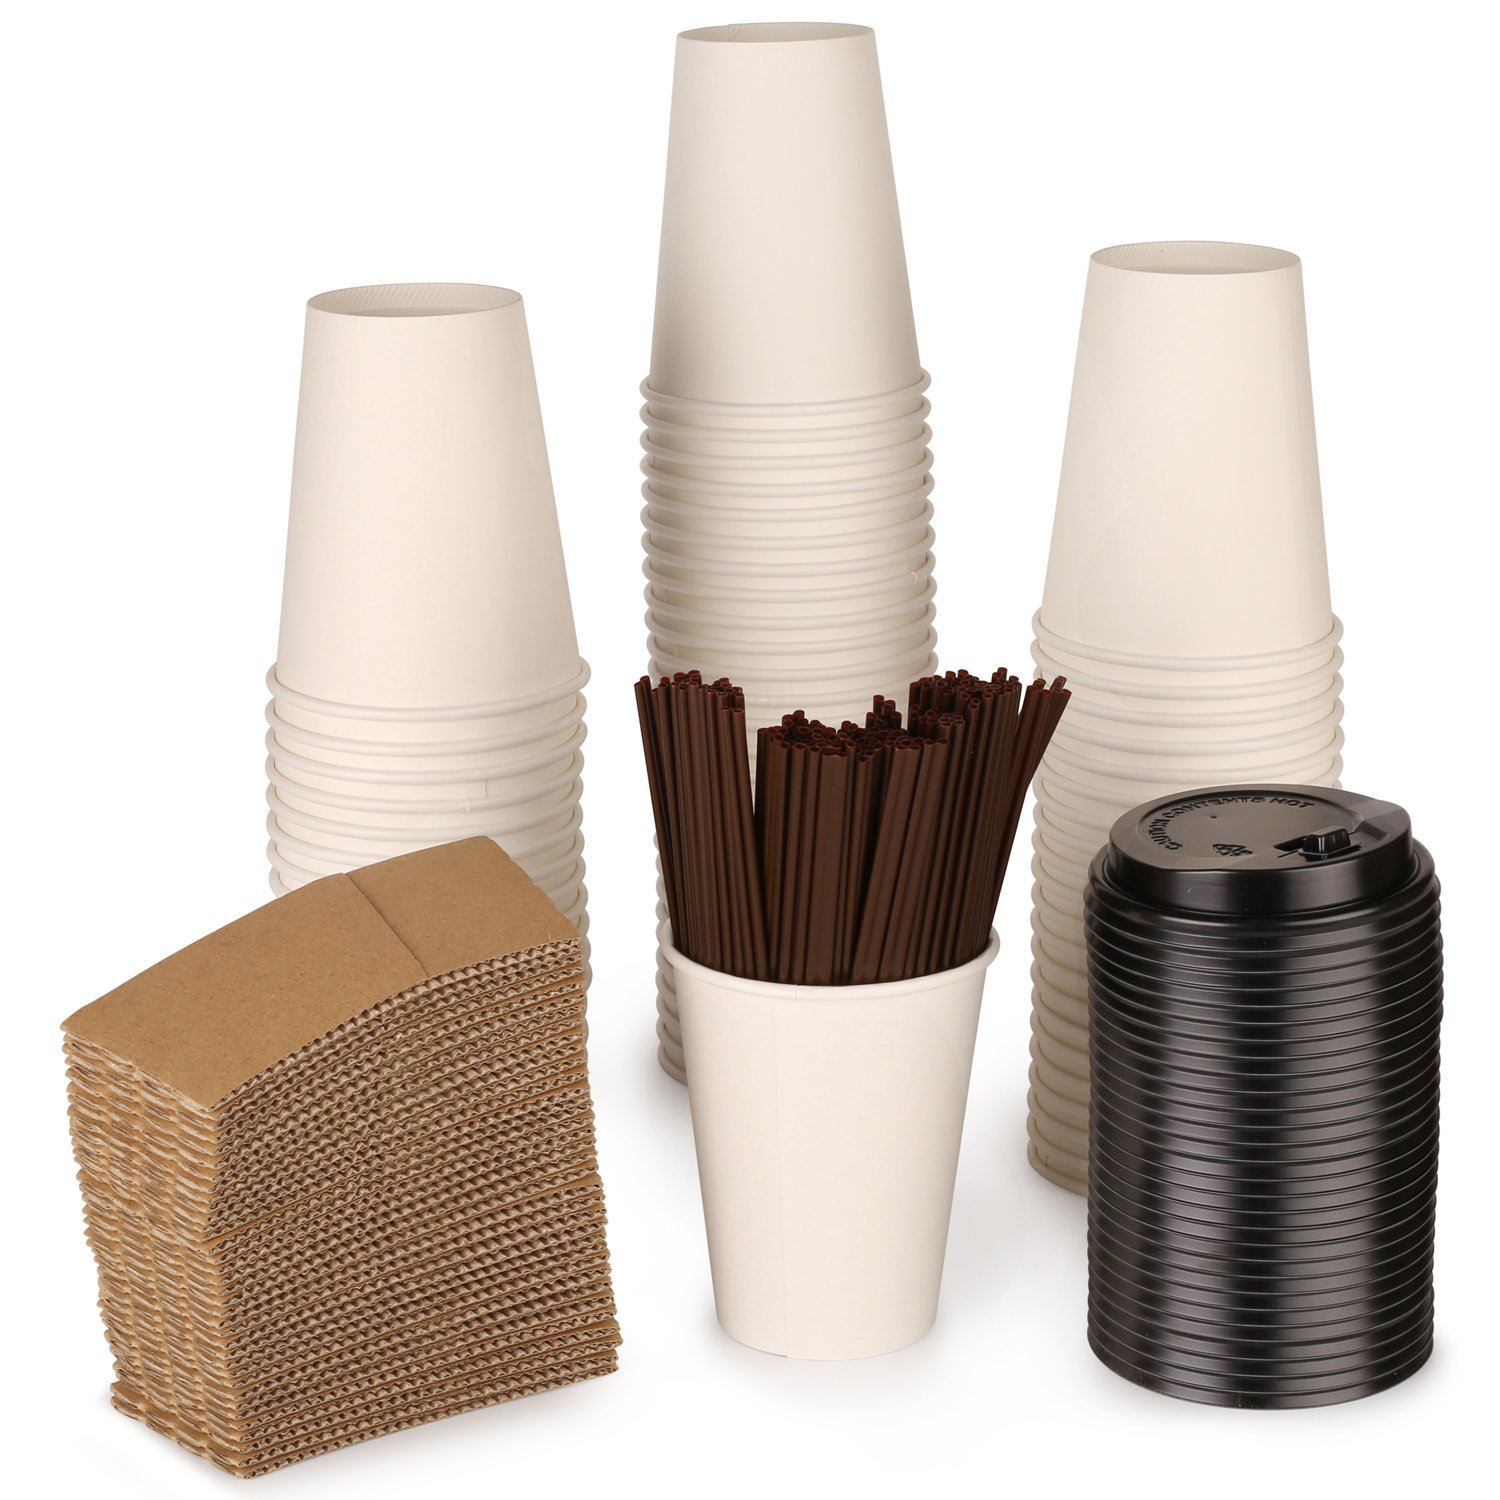 - Paper coffee Hot cups by ZTLbrand - with lids, straws and sleeves [White]12 oz- Set of 100. Perfect for party or daily routine- Reusable and Disposable coffee cups by ZTLbrand